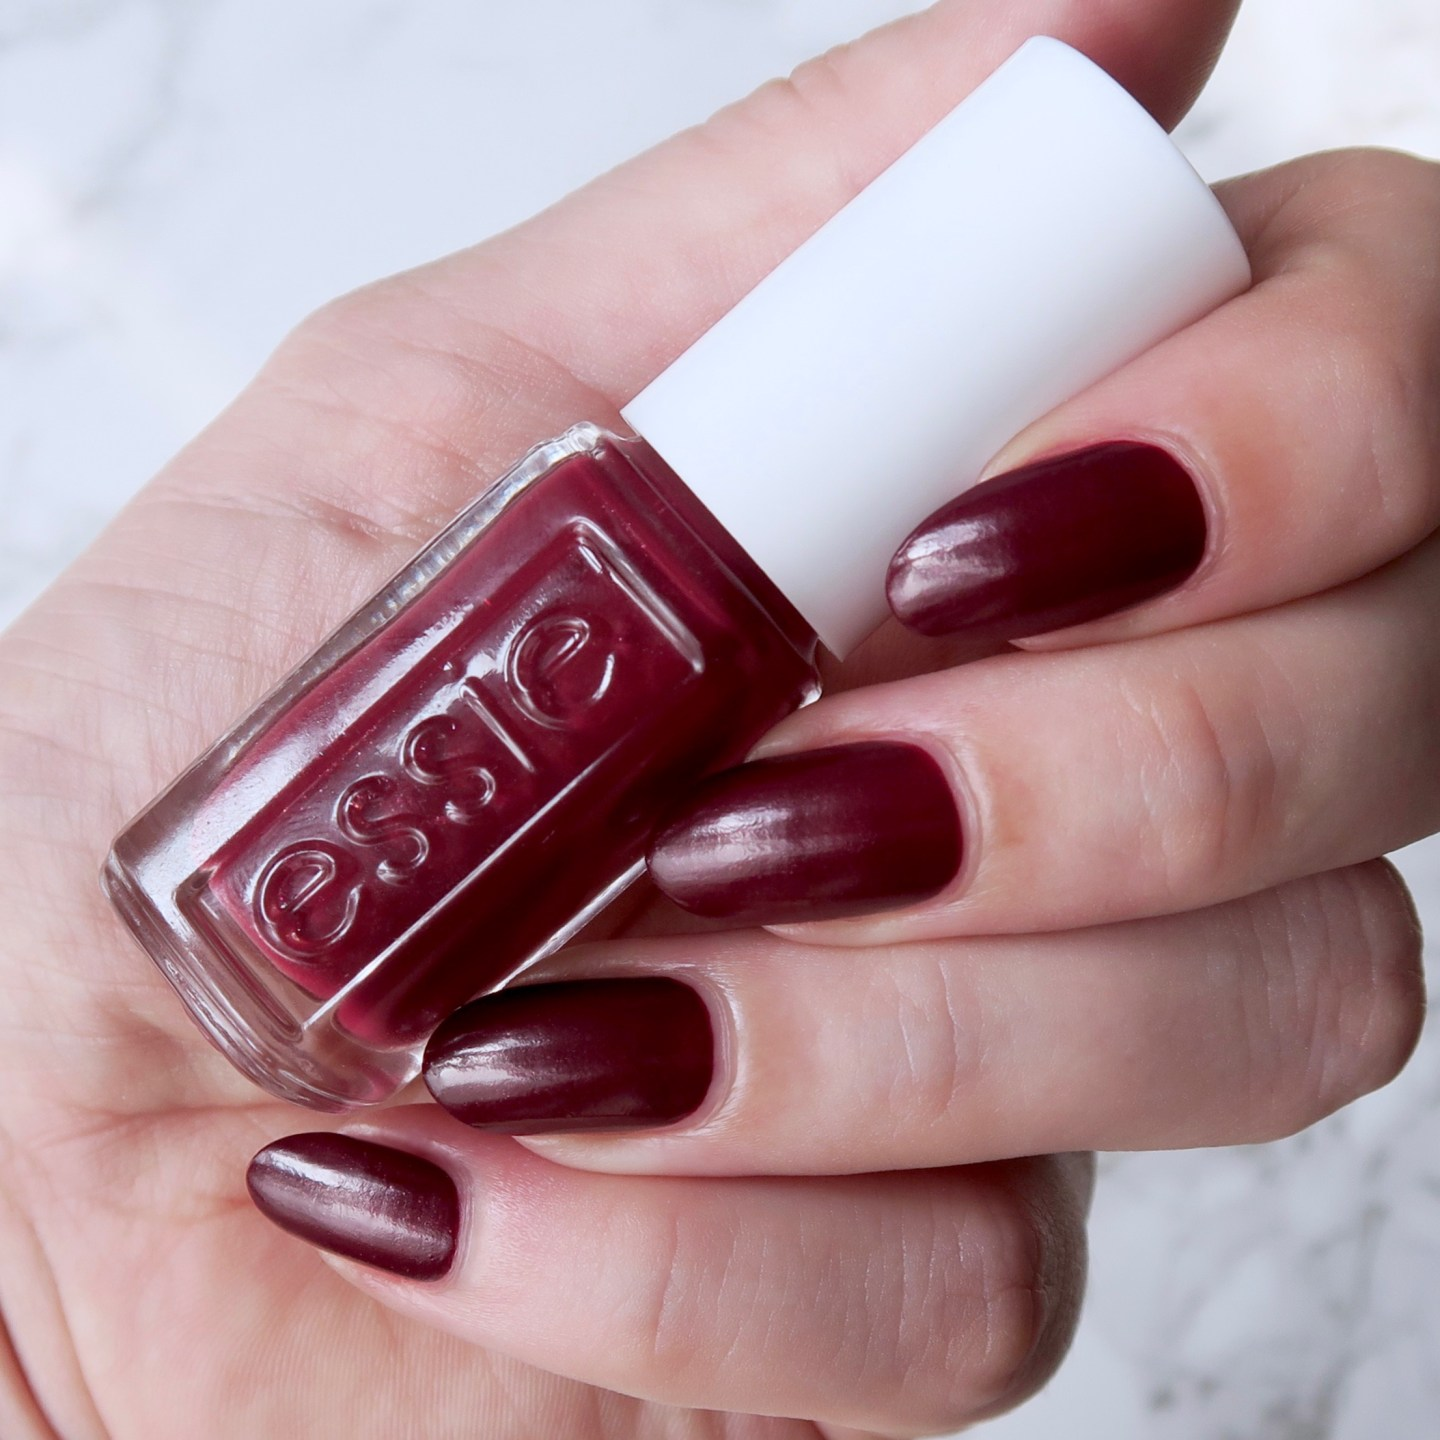 Essie x Rebecca Minkoff Leathers Collection 'Tote-ally In Love'